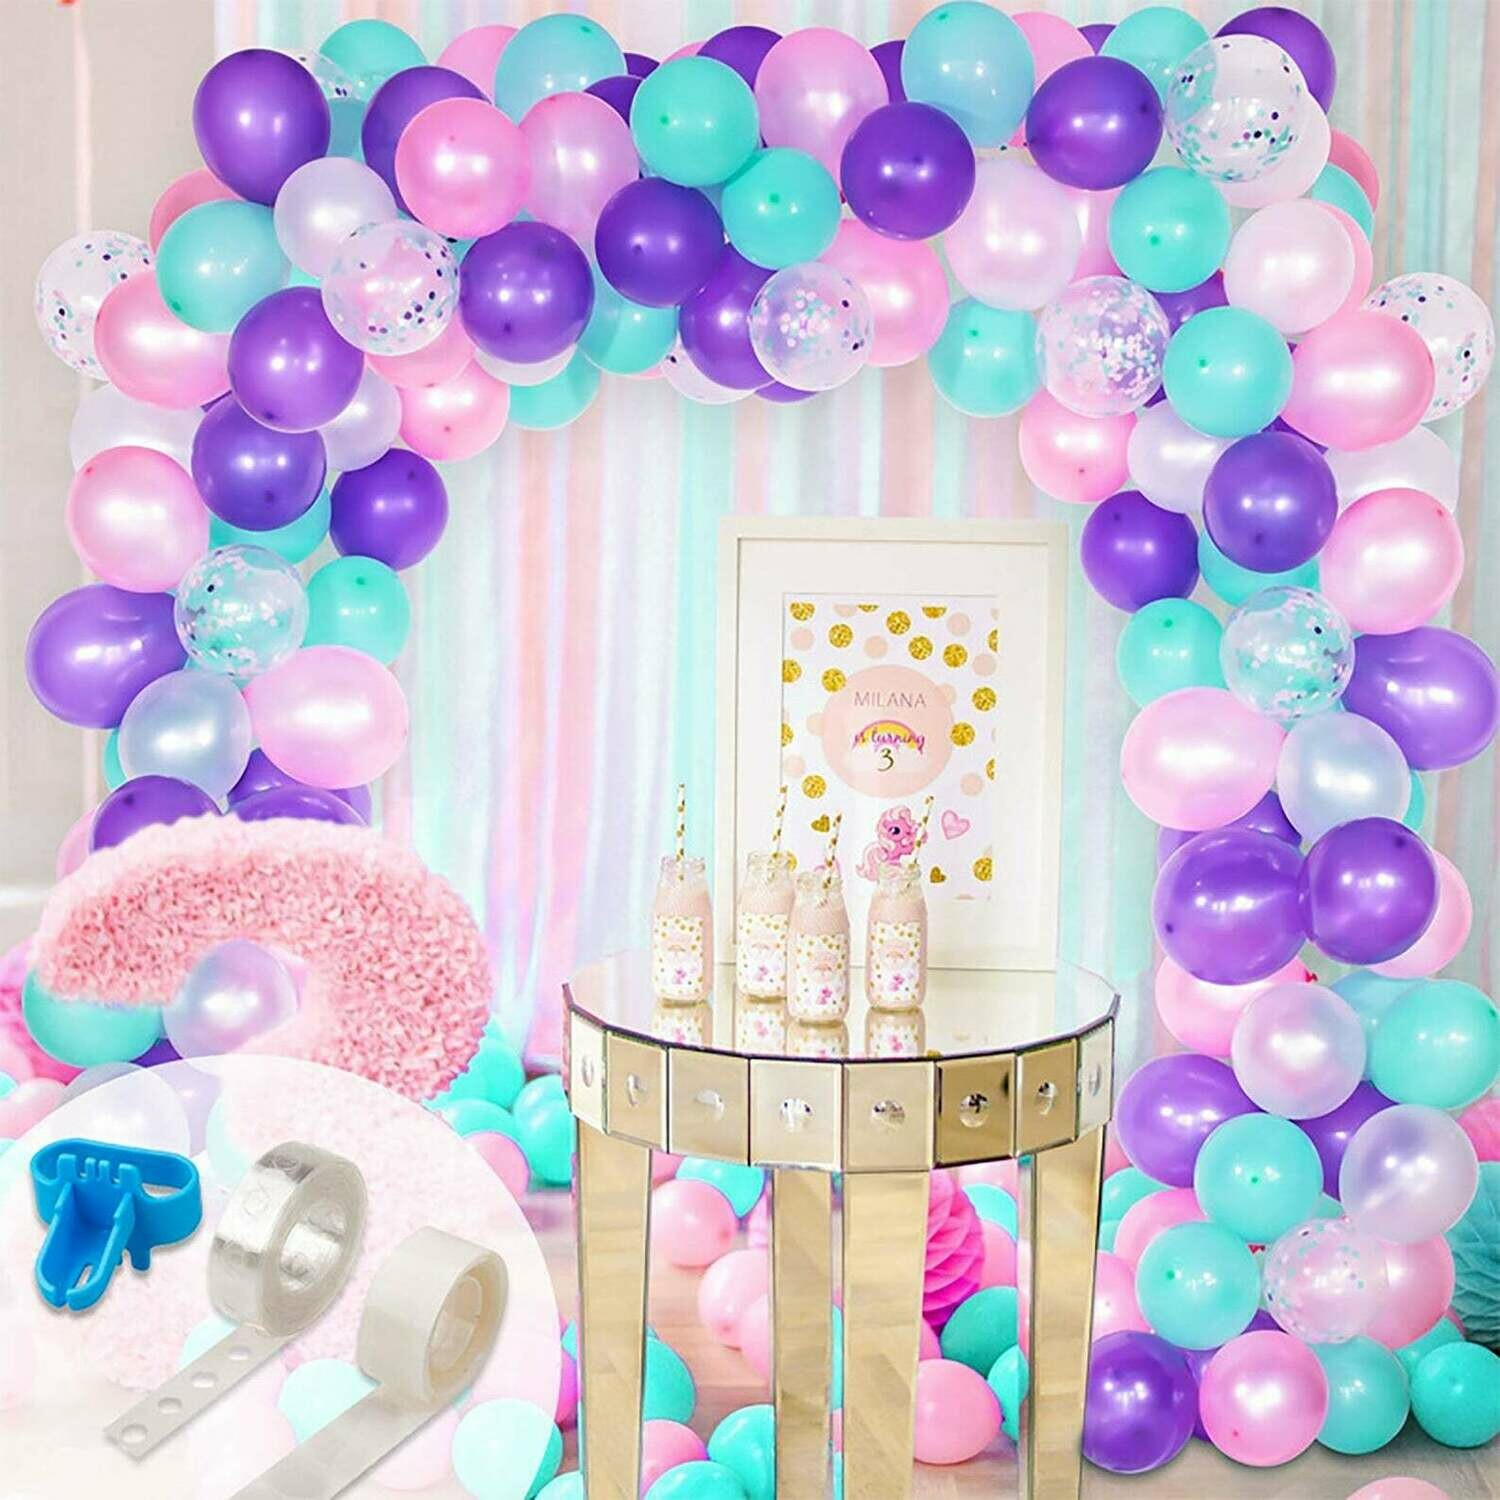 Balloons Garland Arch Kit Party Decor,Craft Supplies & Party ,Wedding Balloon Kit,Party Balloon Decoration,Craft Supplies